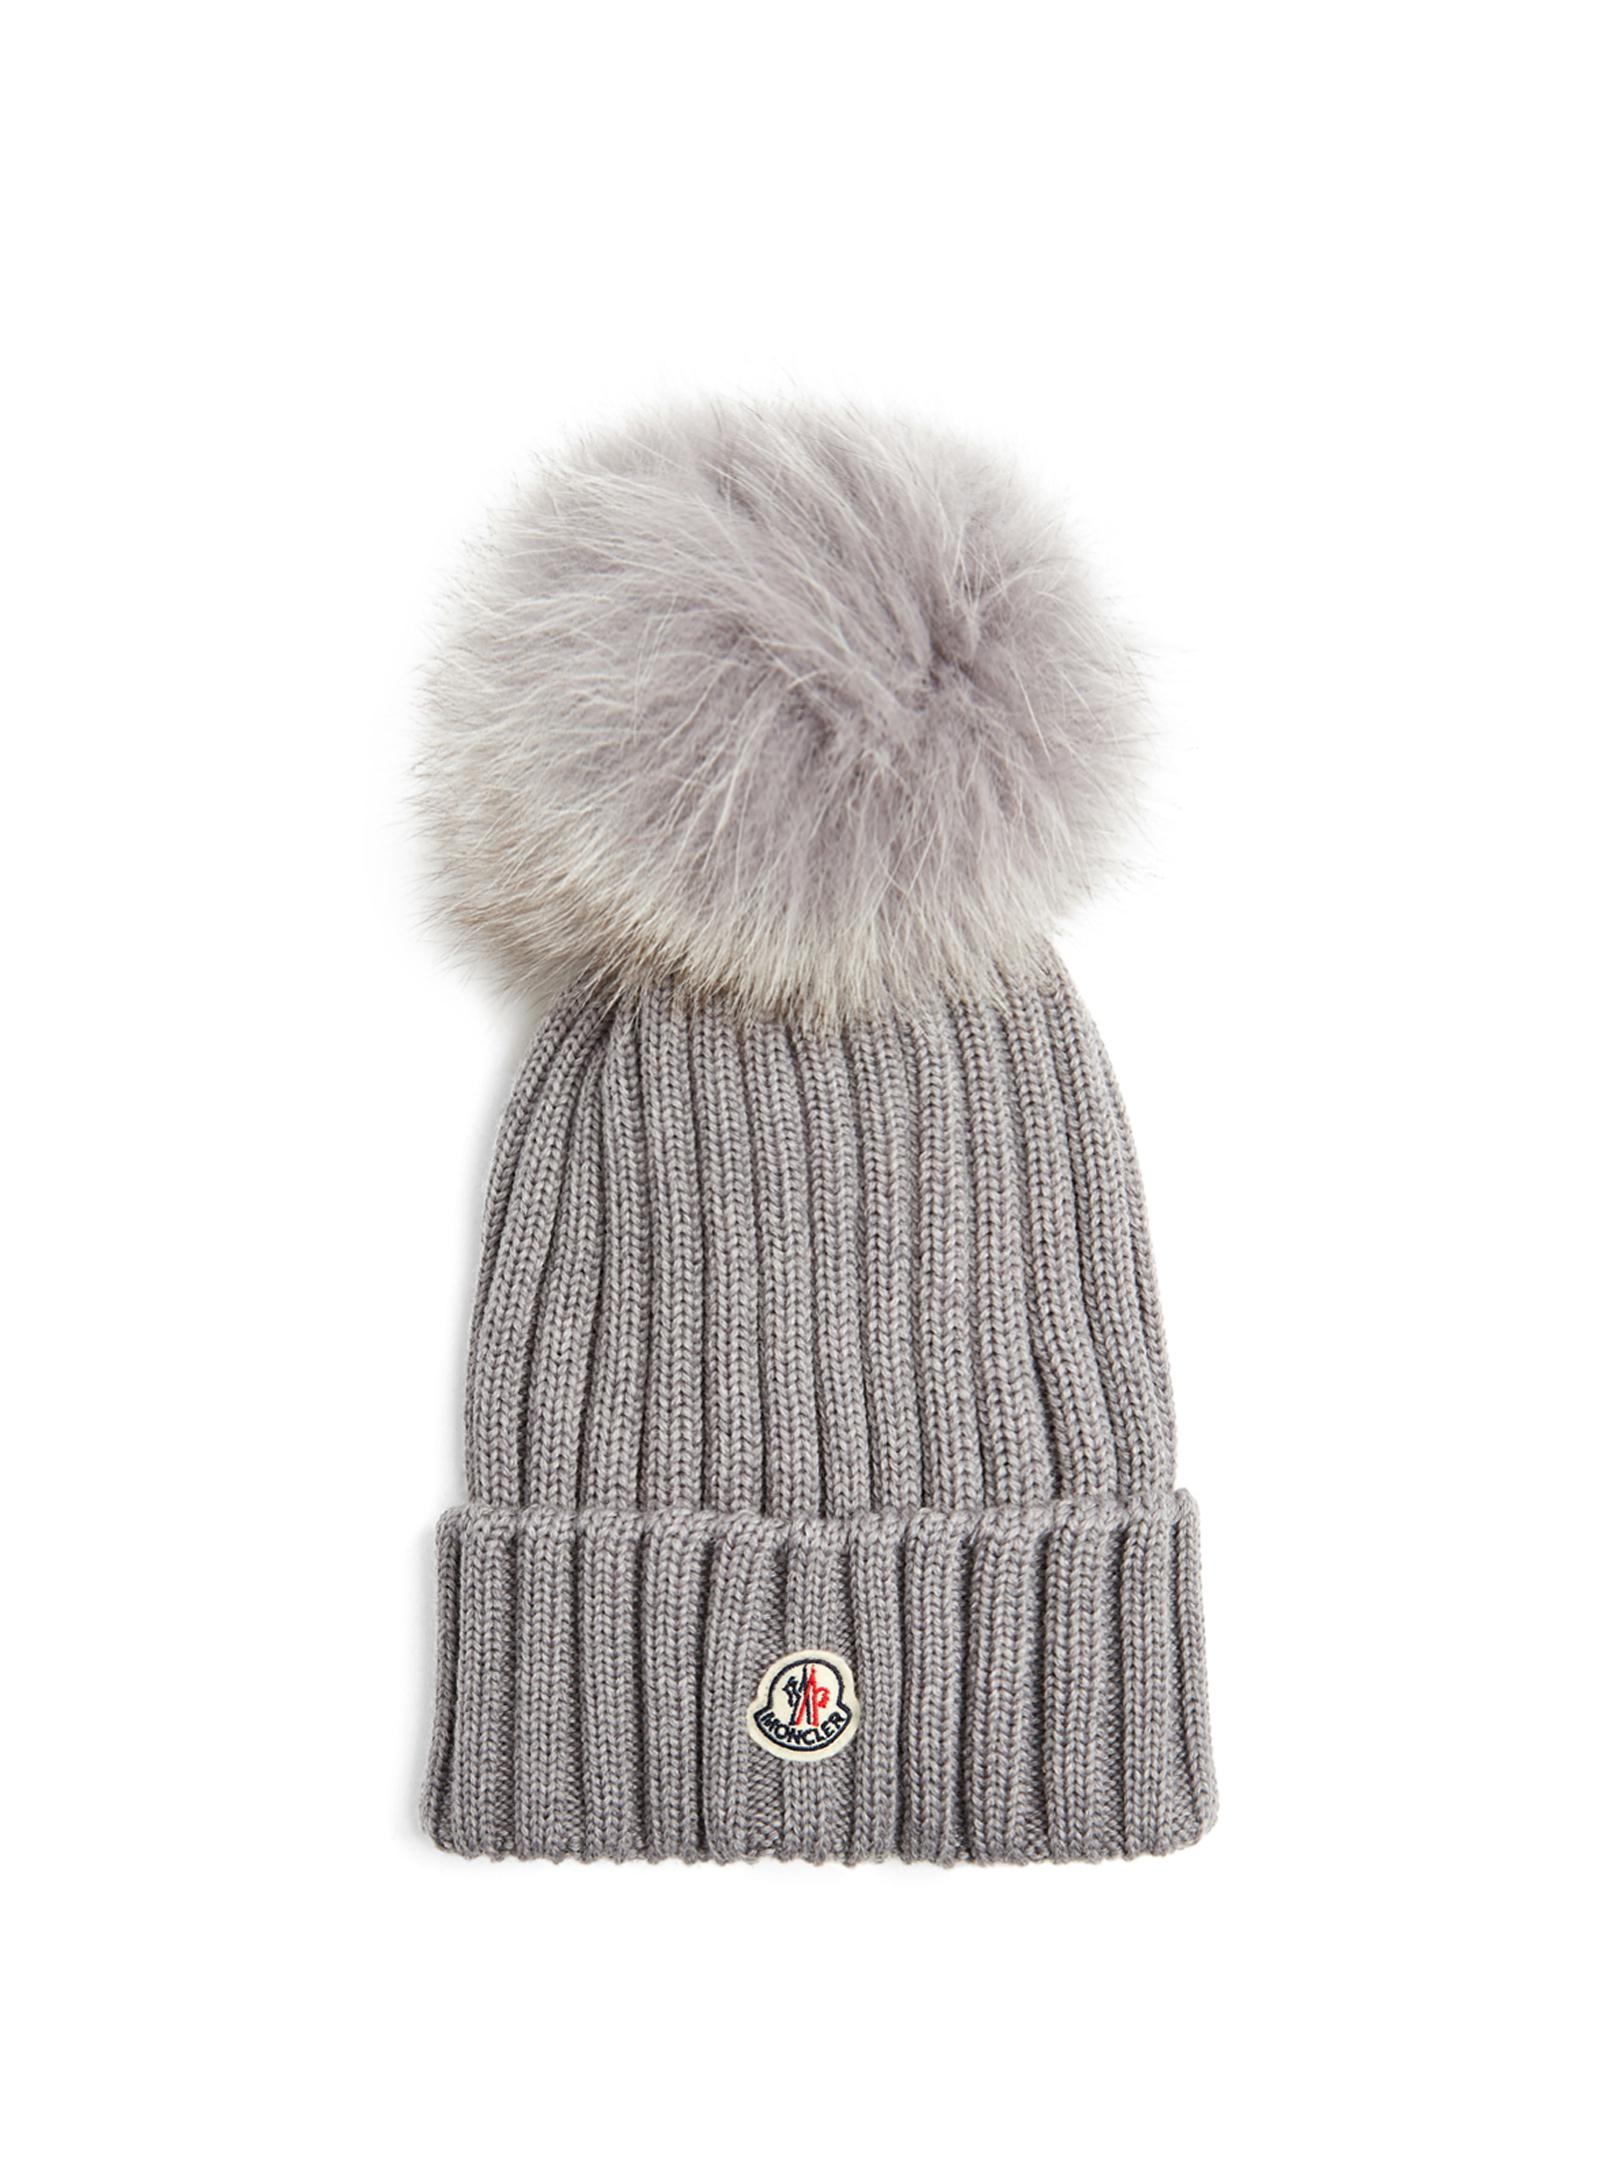 2a94e04b138 Lyst - Moncler Fur-pompom Wool Beanie Hat in Gray